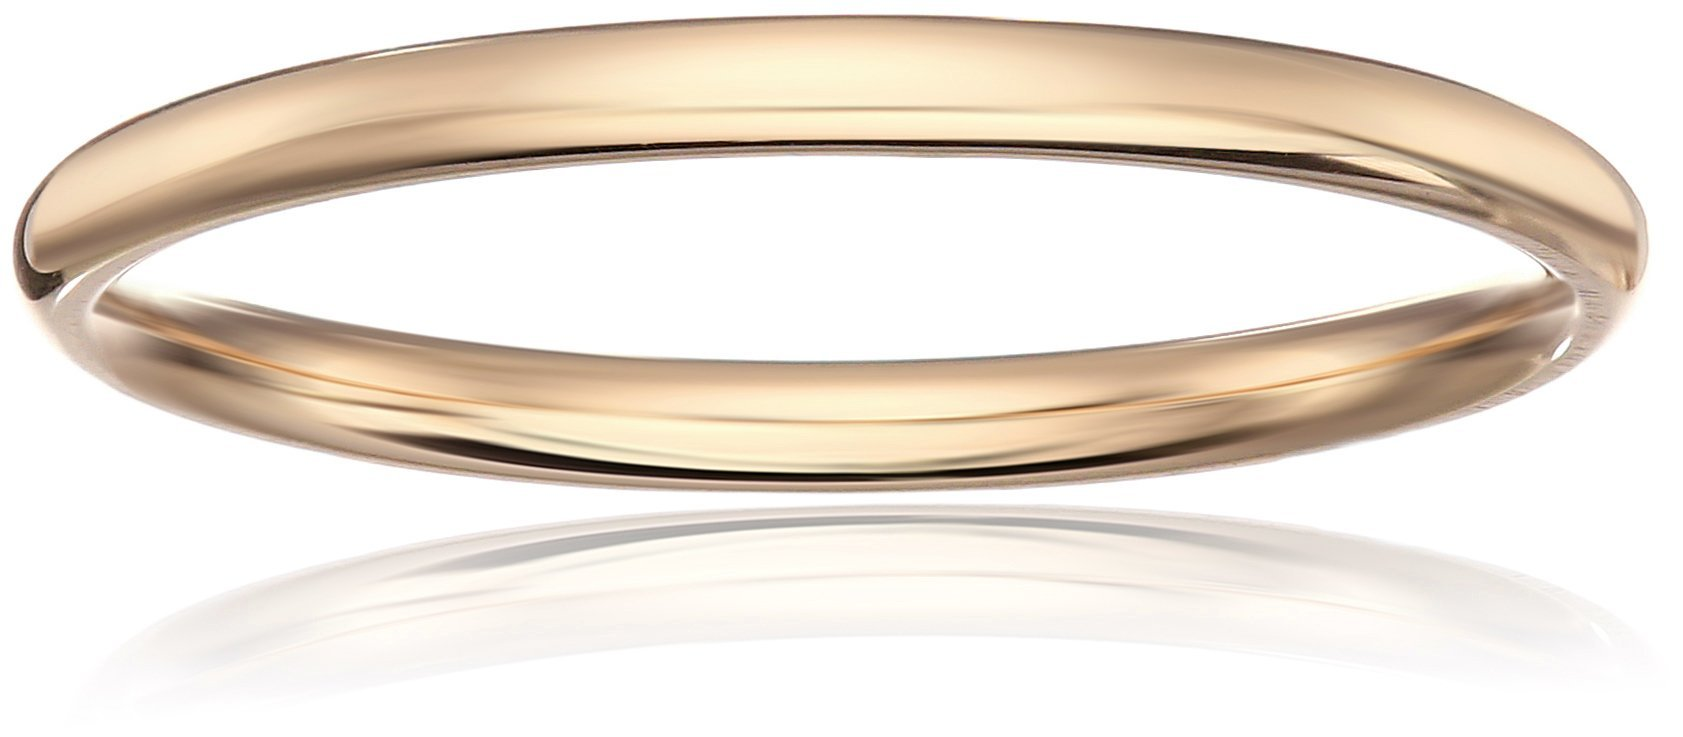 Standard Comfort-Fit 10K Yellow Gold Band, 2mm, Size 5